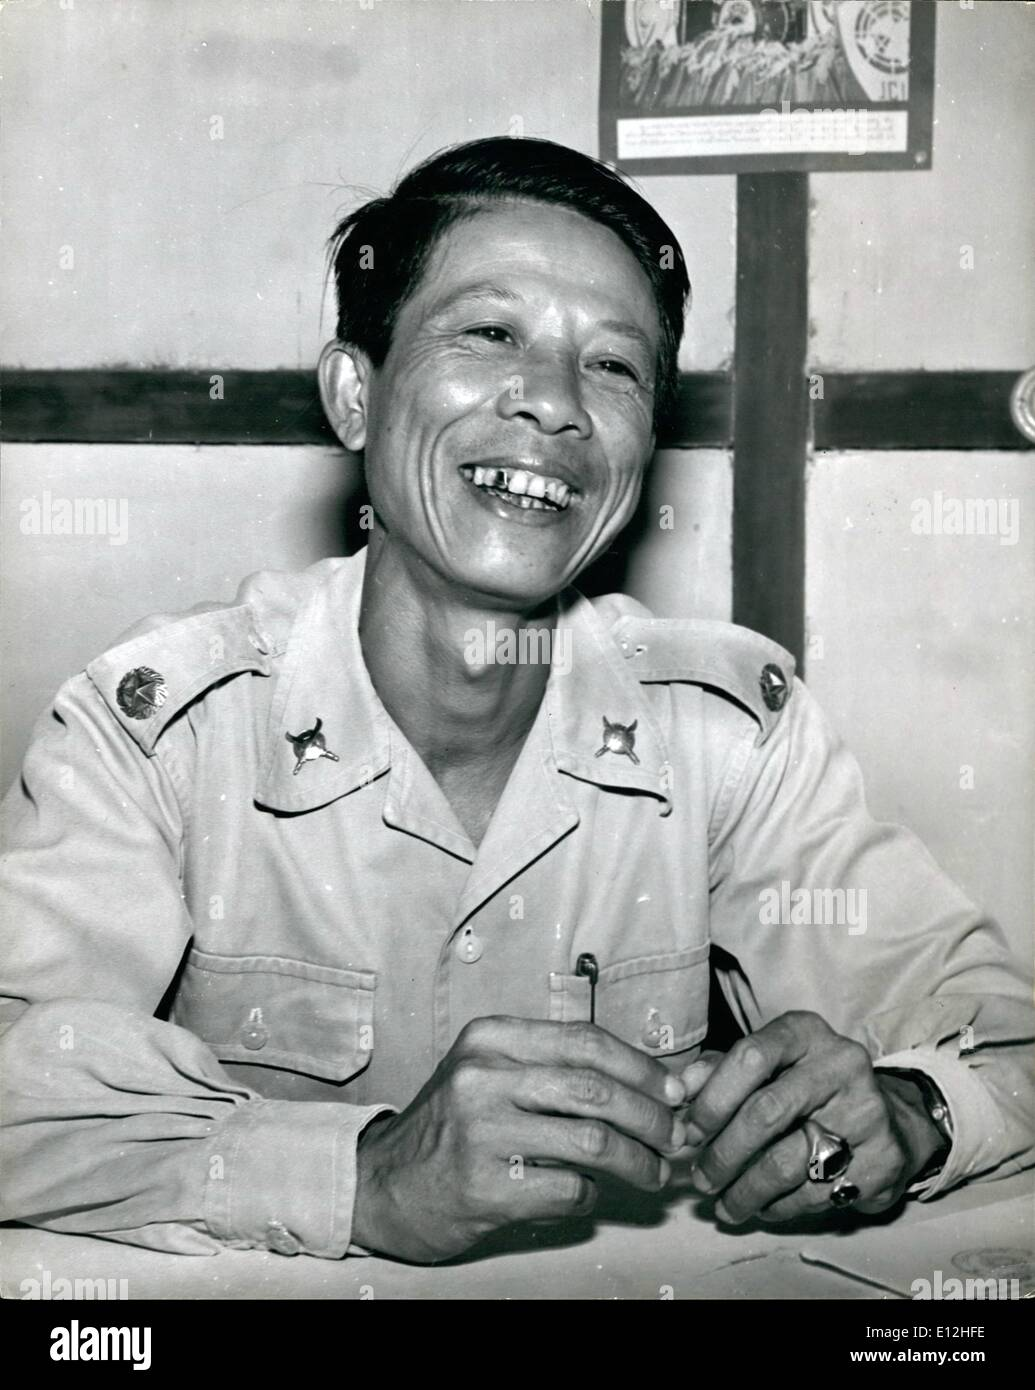 Feb. 24, 2012 - New Commander Of Pathet Lao Forces: Major Sa Sanith, new commander of Pathet Lao forces in Xieng Ngun, who was appointed from the Government forces. He took up his command on May 12. He has been in the Army for the past 18 years, first with the French. - Stock Image